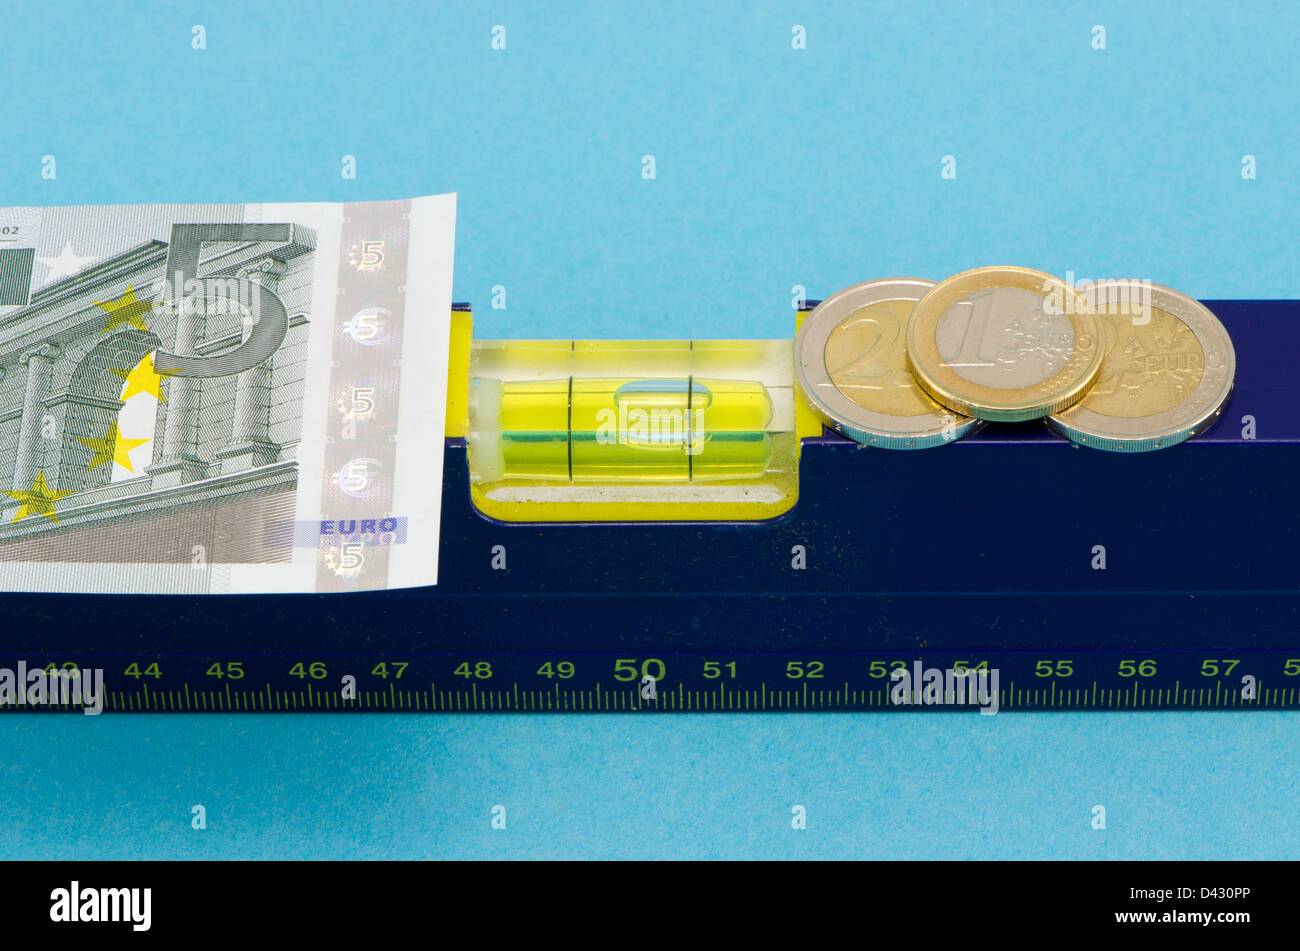 construction industry spirit level tool euro banknote and coins on blue background. - Stock Image